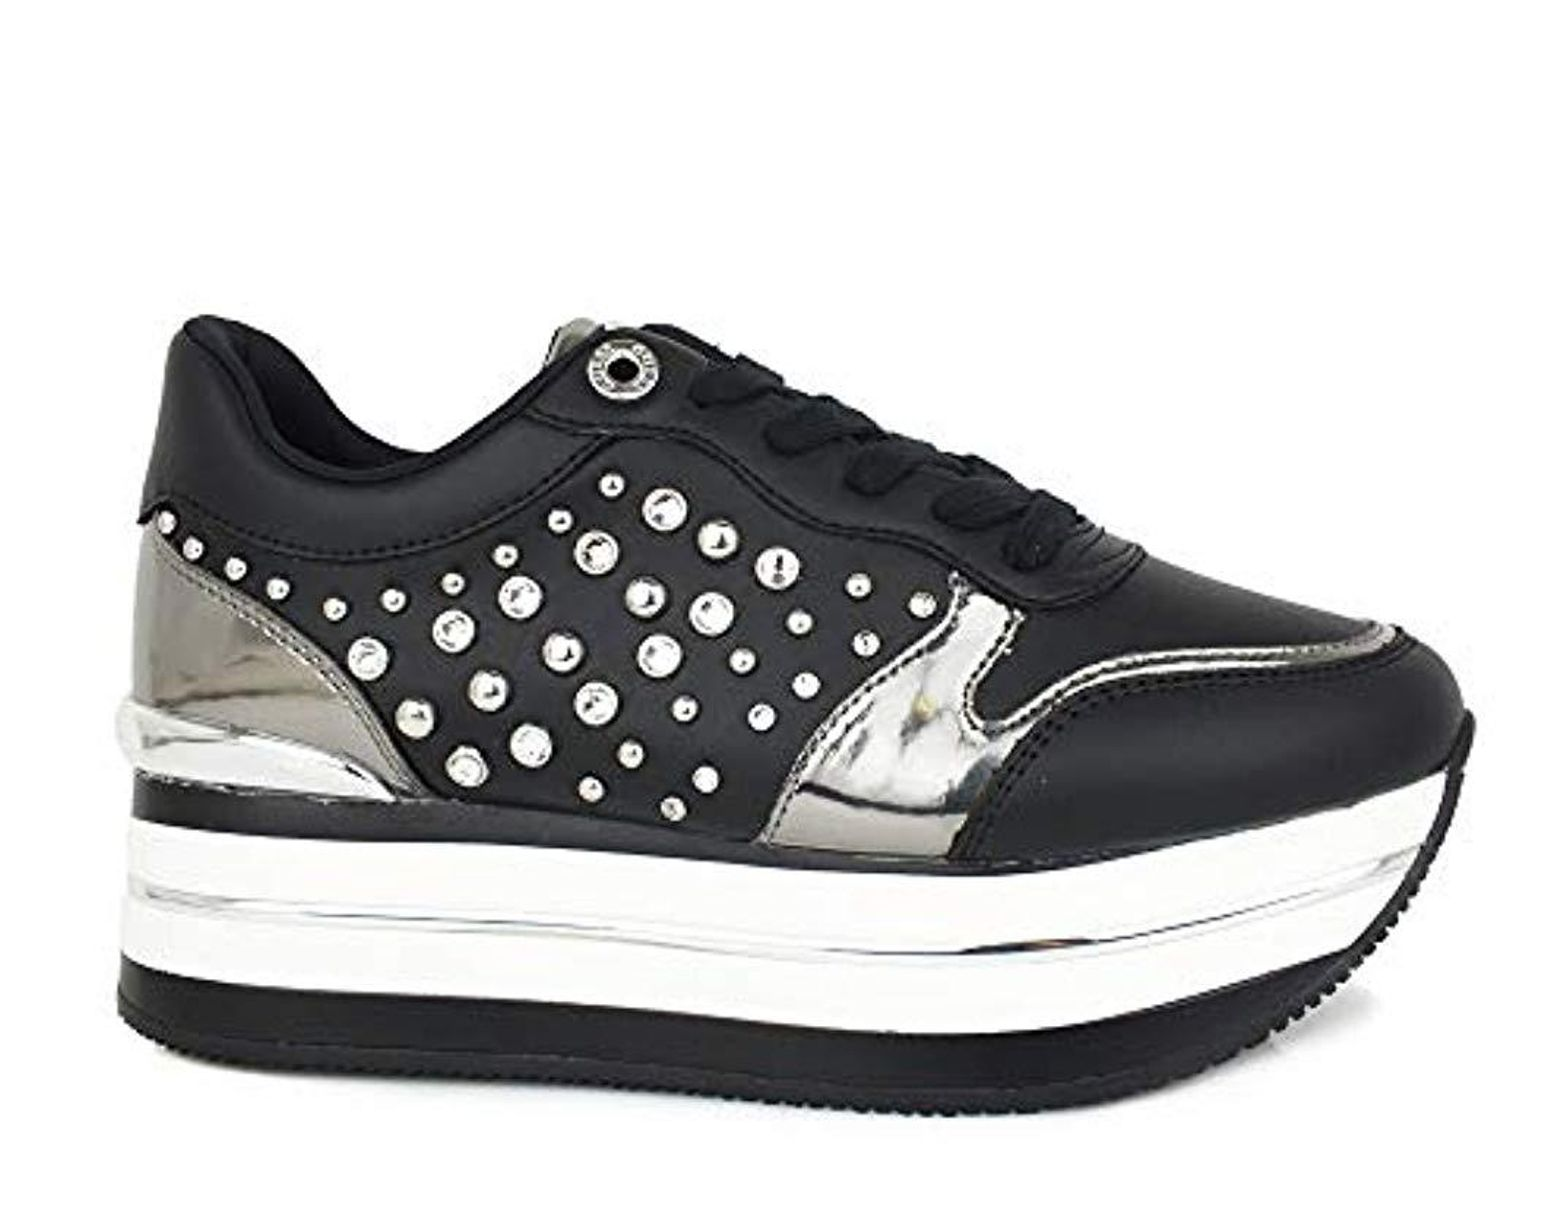 Fl5hinlac12 Femme 36 Sneakers Fl5hinlac12 Sneakers Guess Guess Femme 36 Guess N0w8mnv